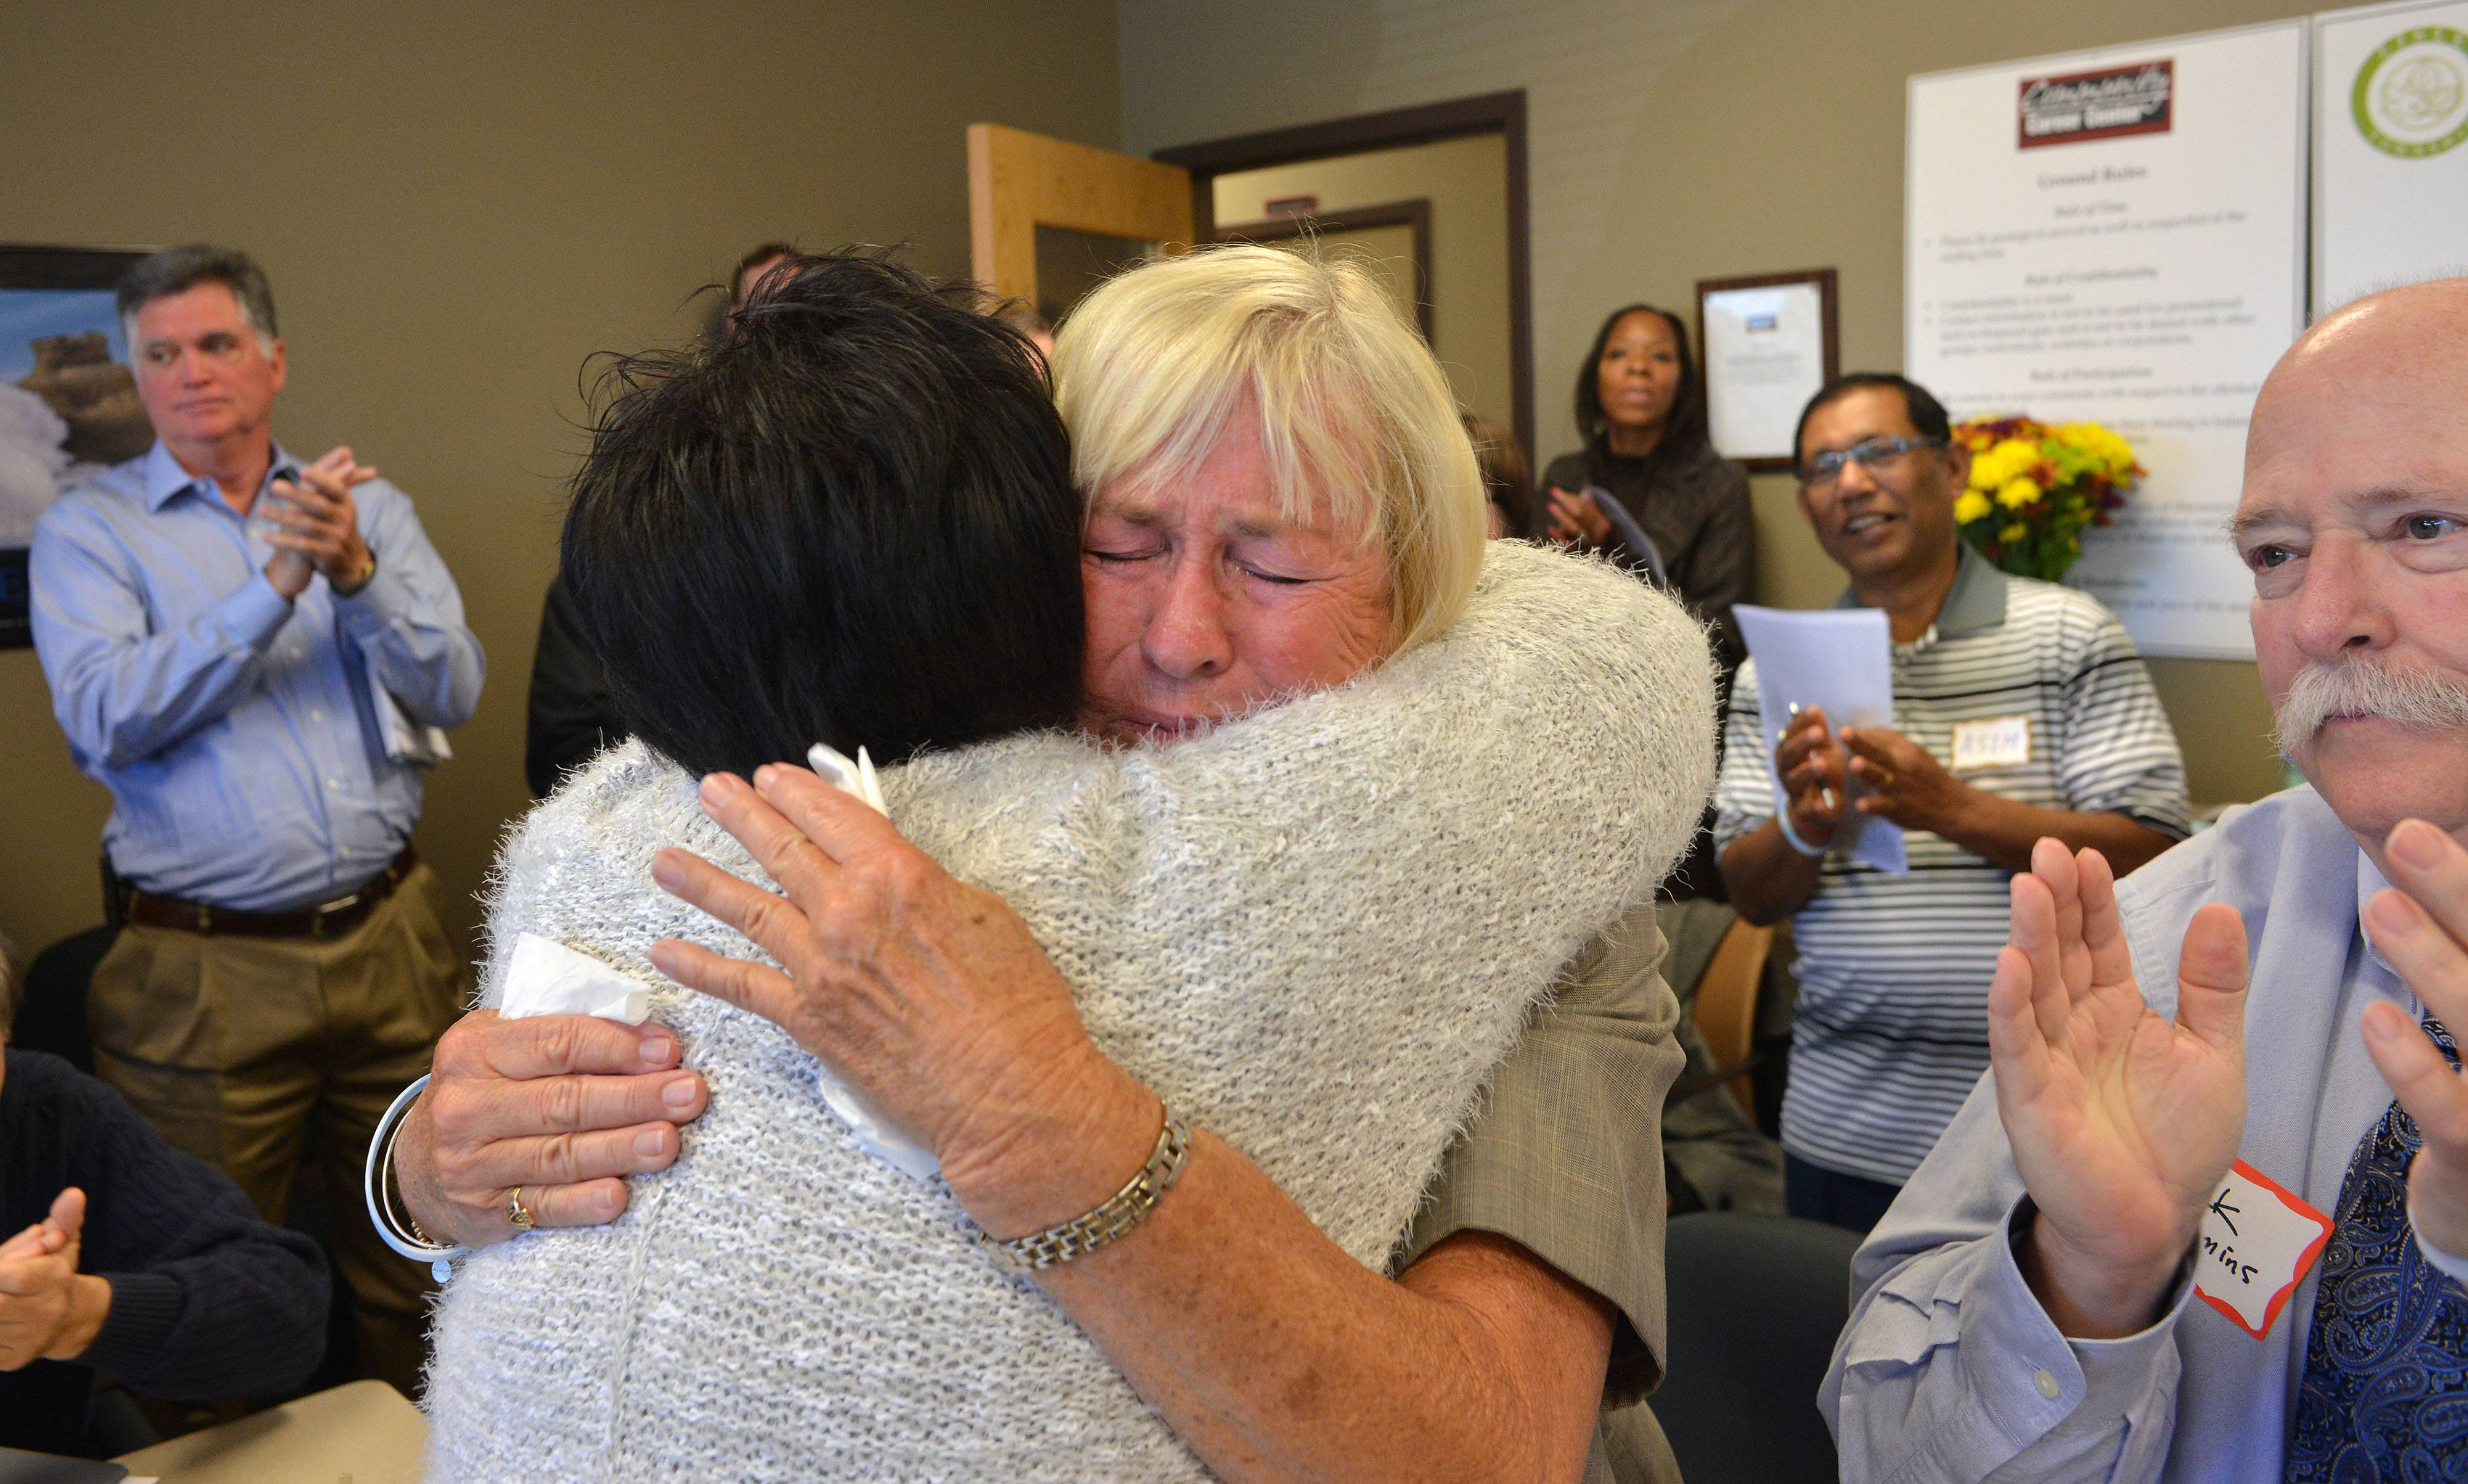 Joy Maguire Dooley, facing camera, gets an emotional send-off Wednesday at her final Job Club meeting at the Community Career Center in Naperville, which she helped found in 1996.